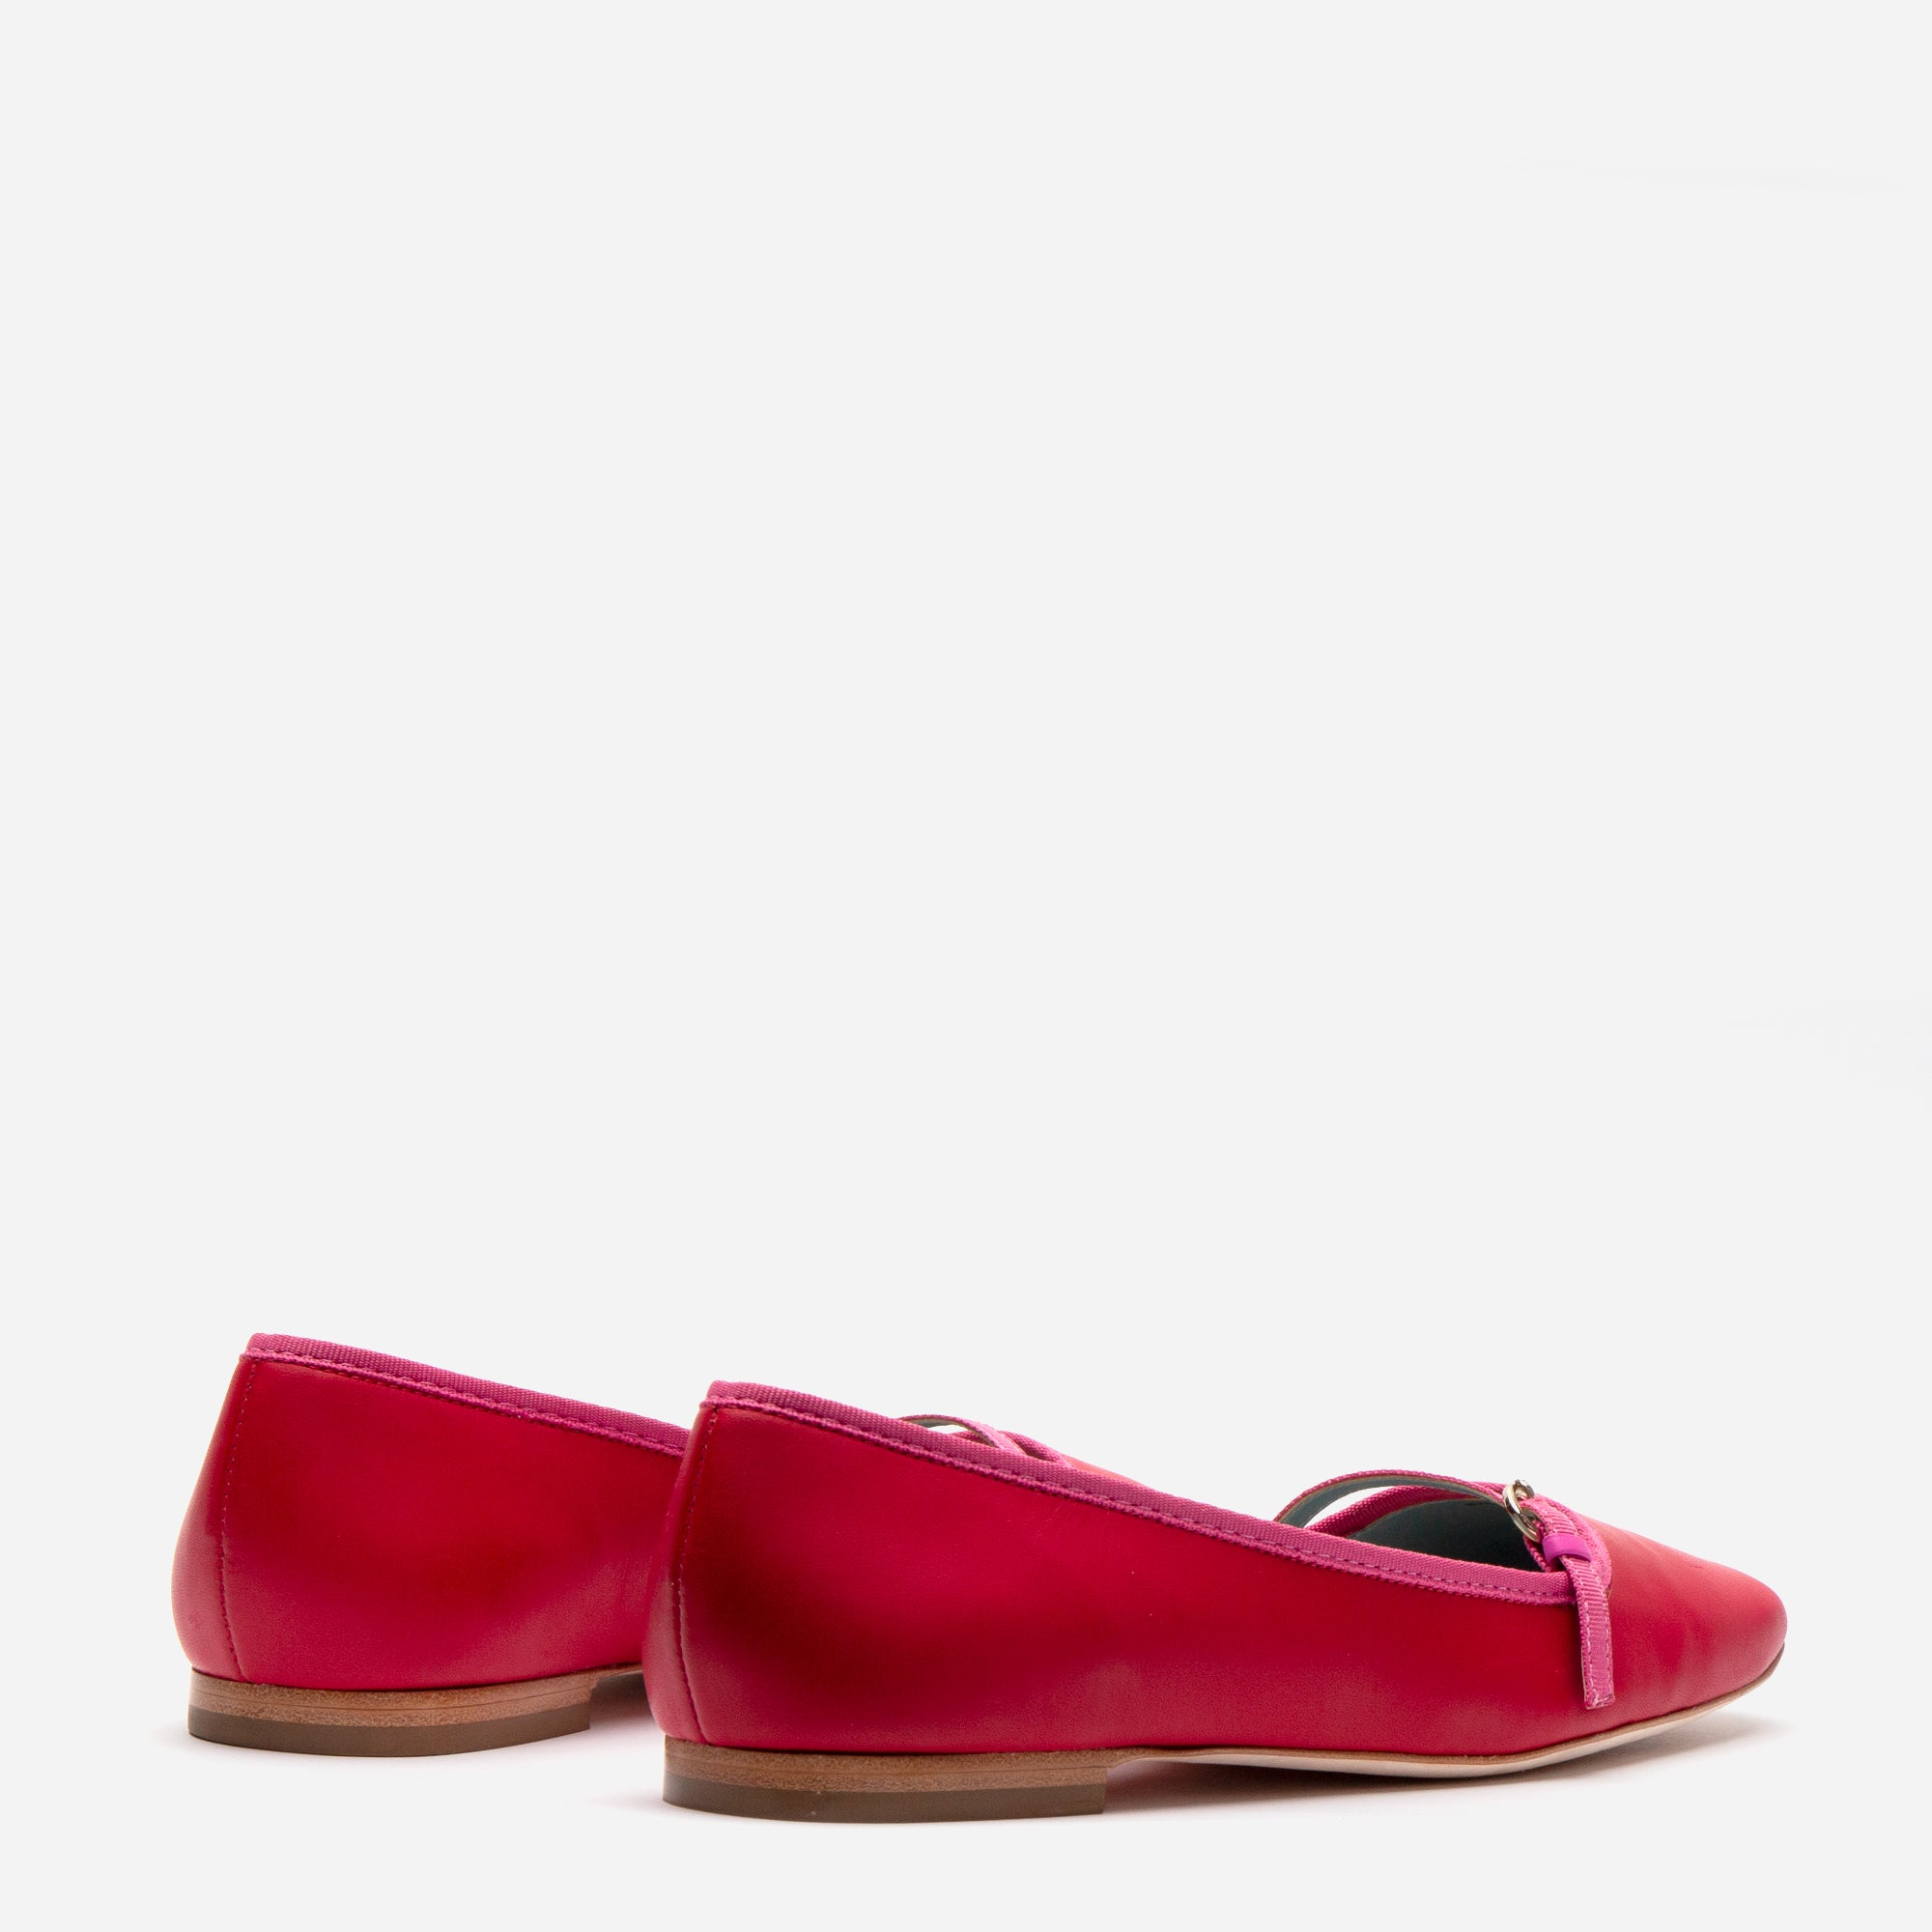 Josie Leather Flats Red Pink